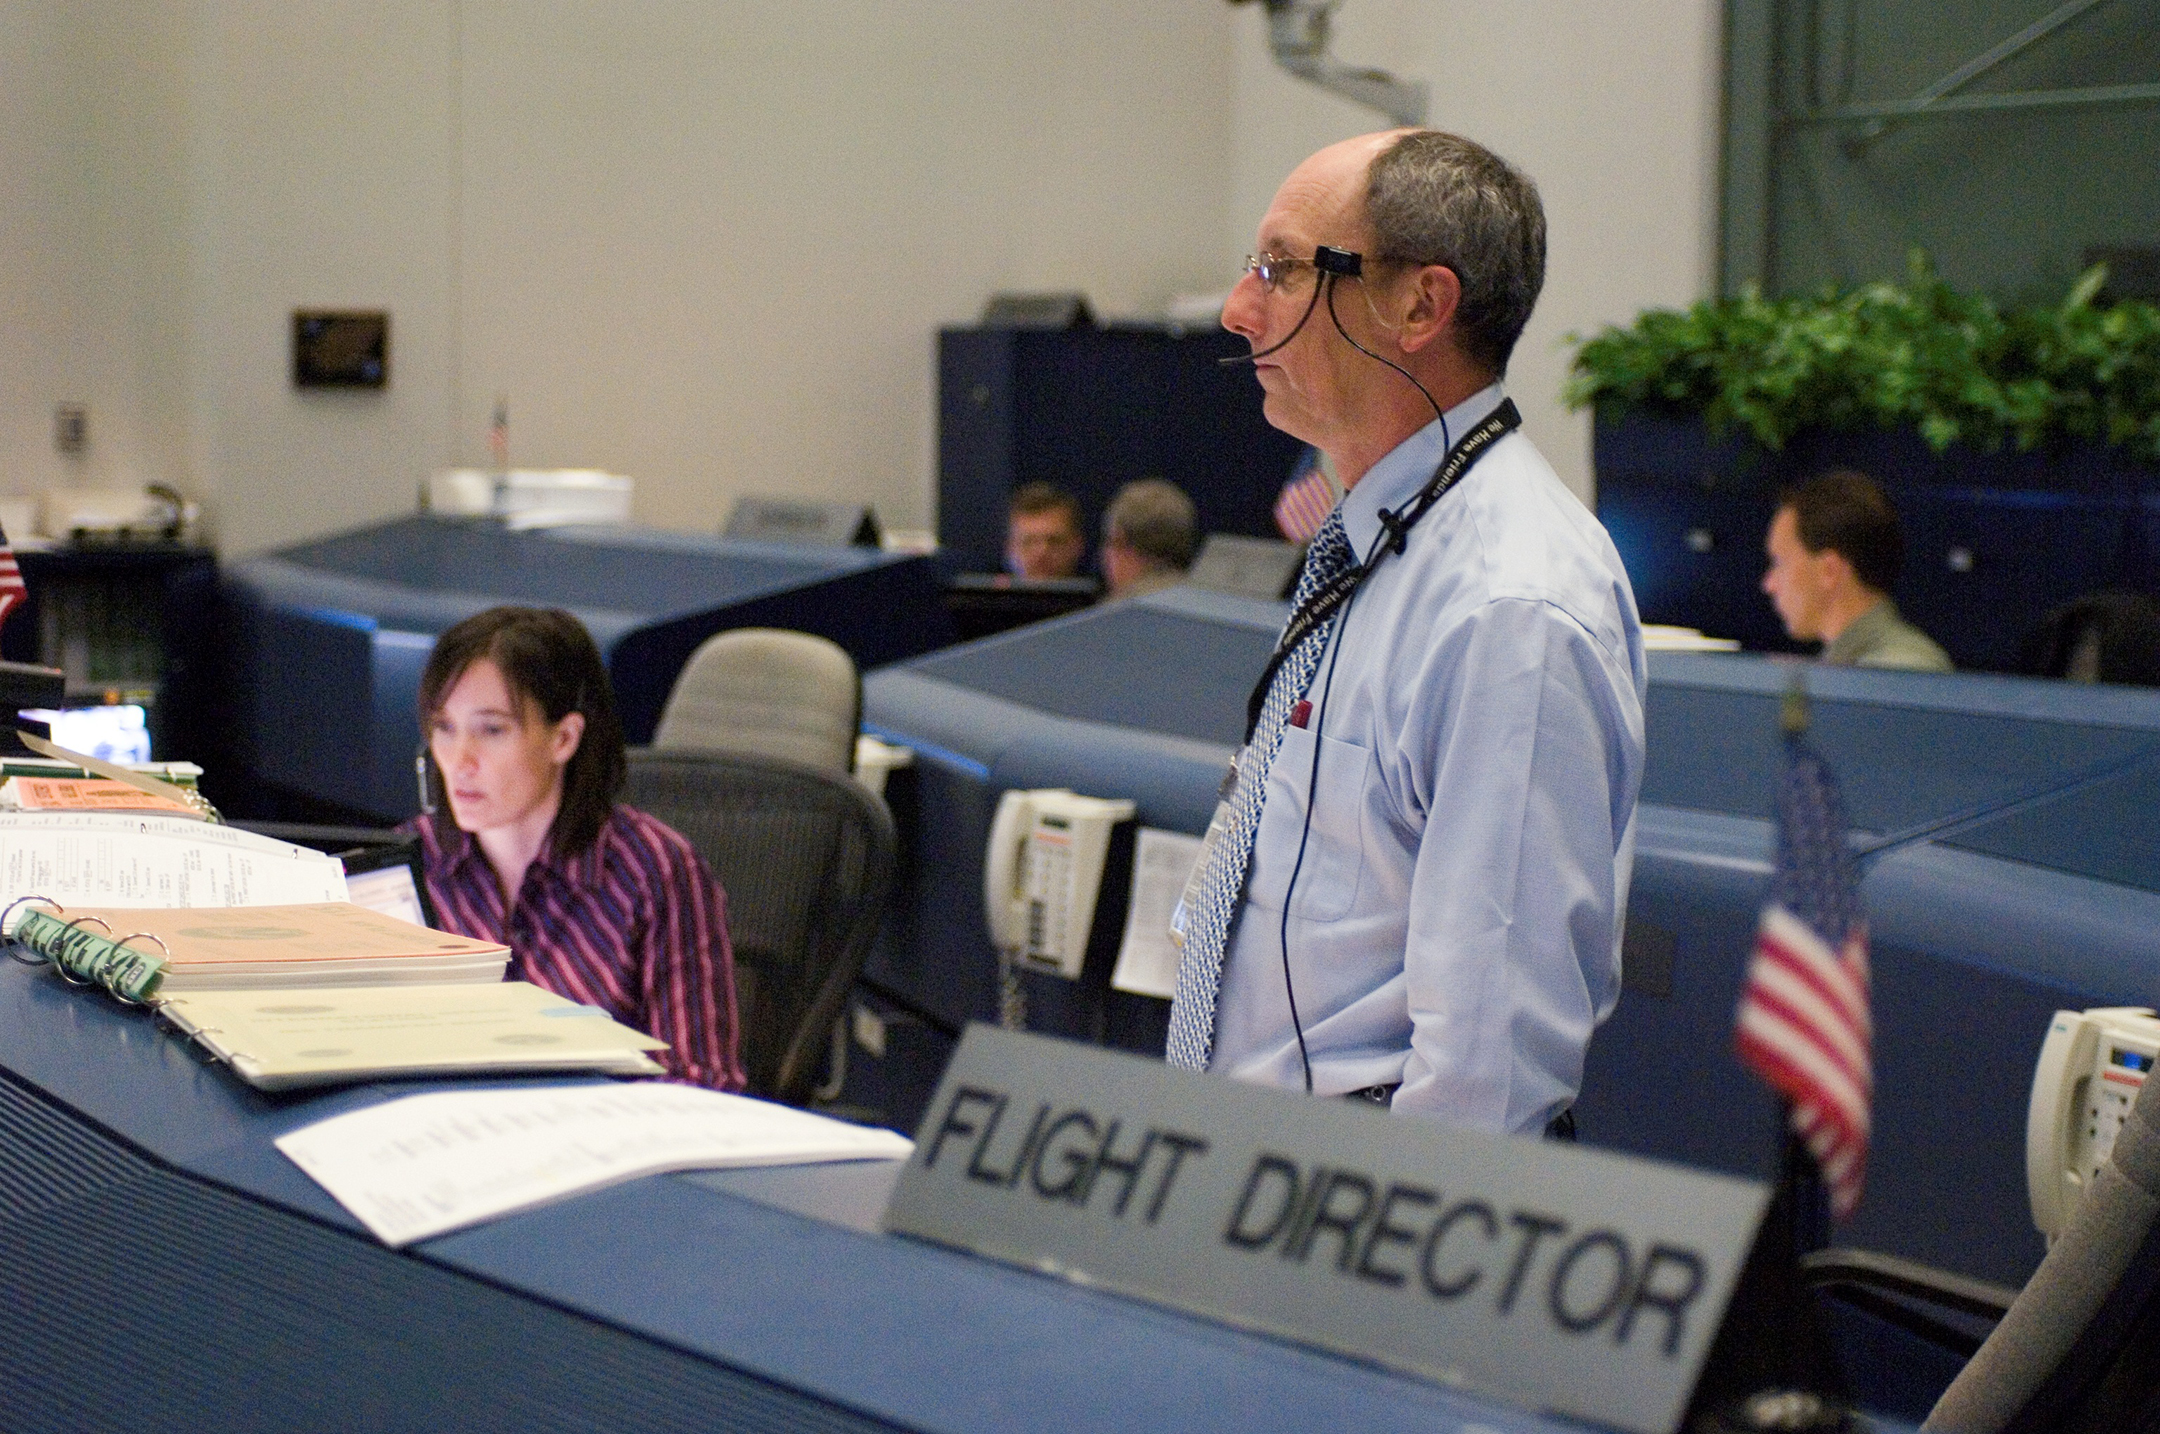 paul dye wears his headset and stands in mission control during a shuttle mission